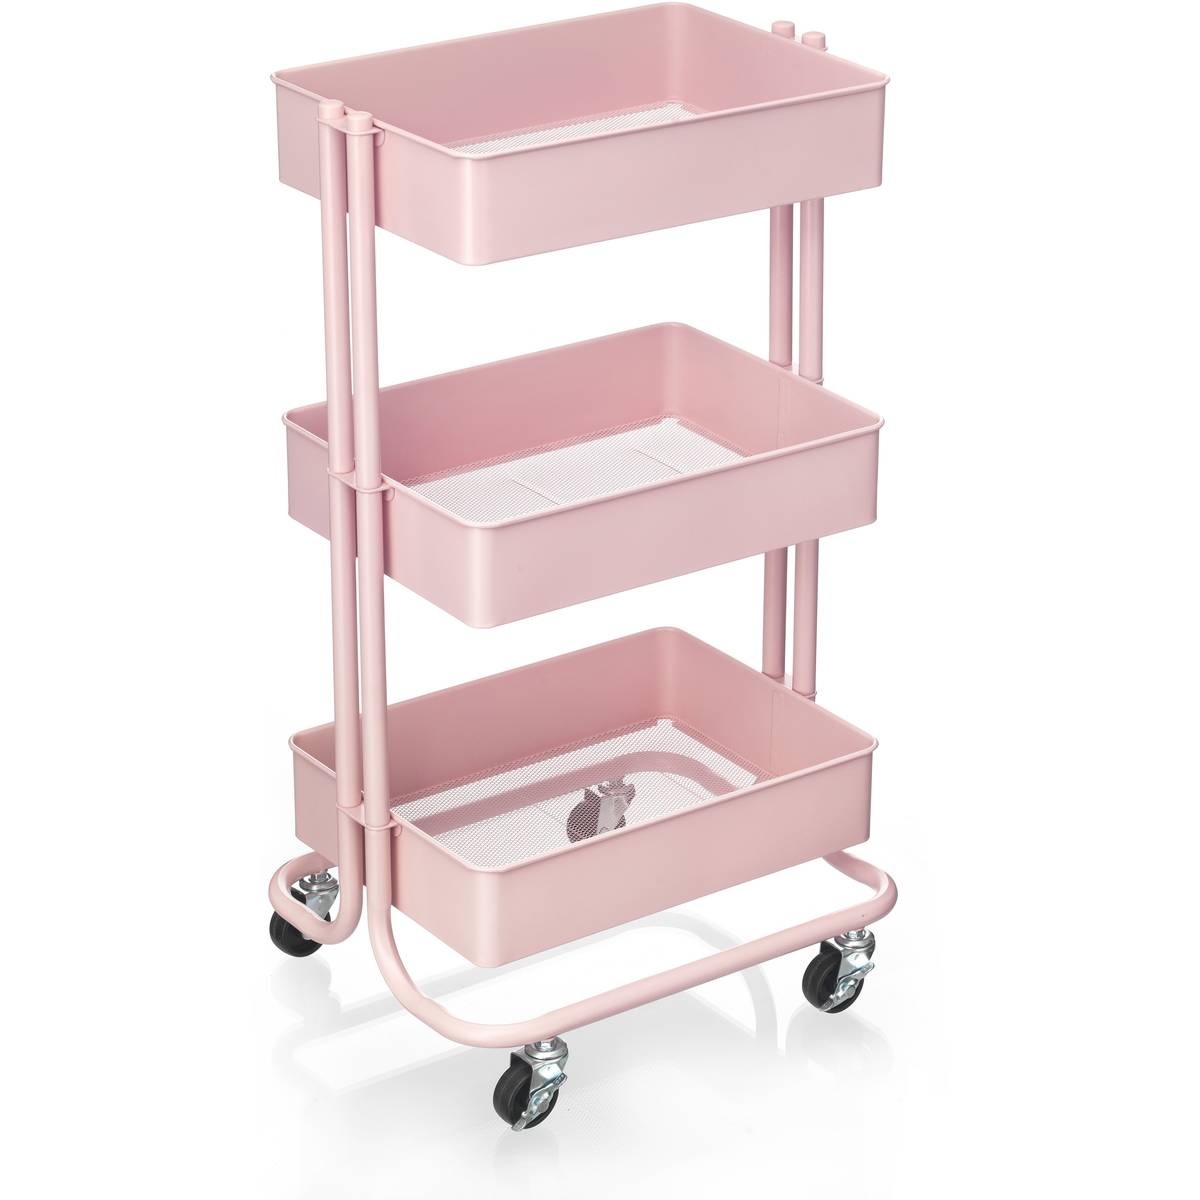 Metal hand trolley 3 tier - Pink